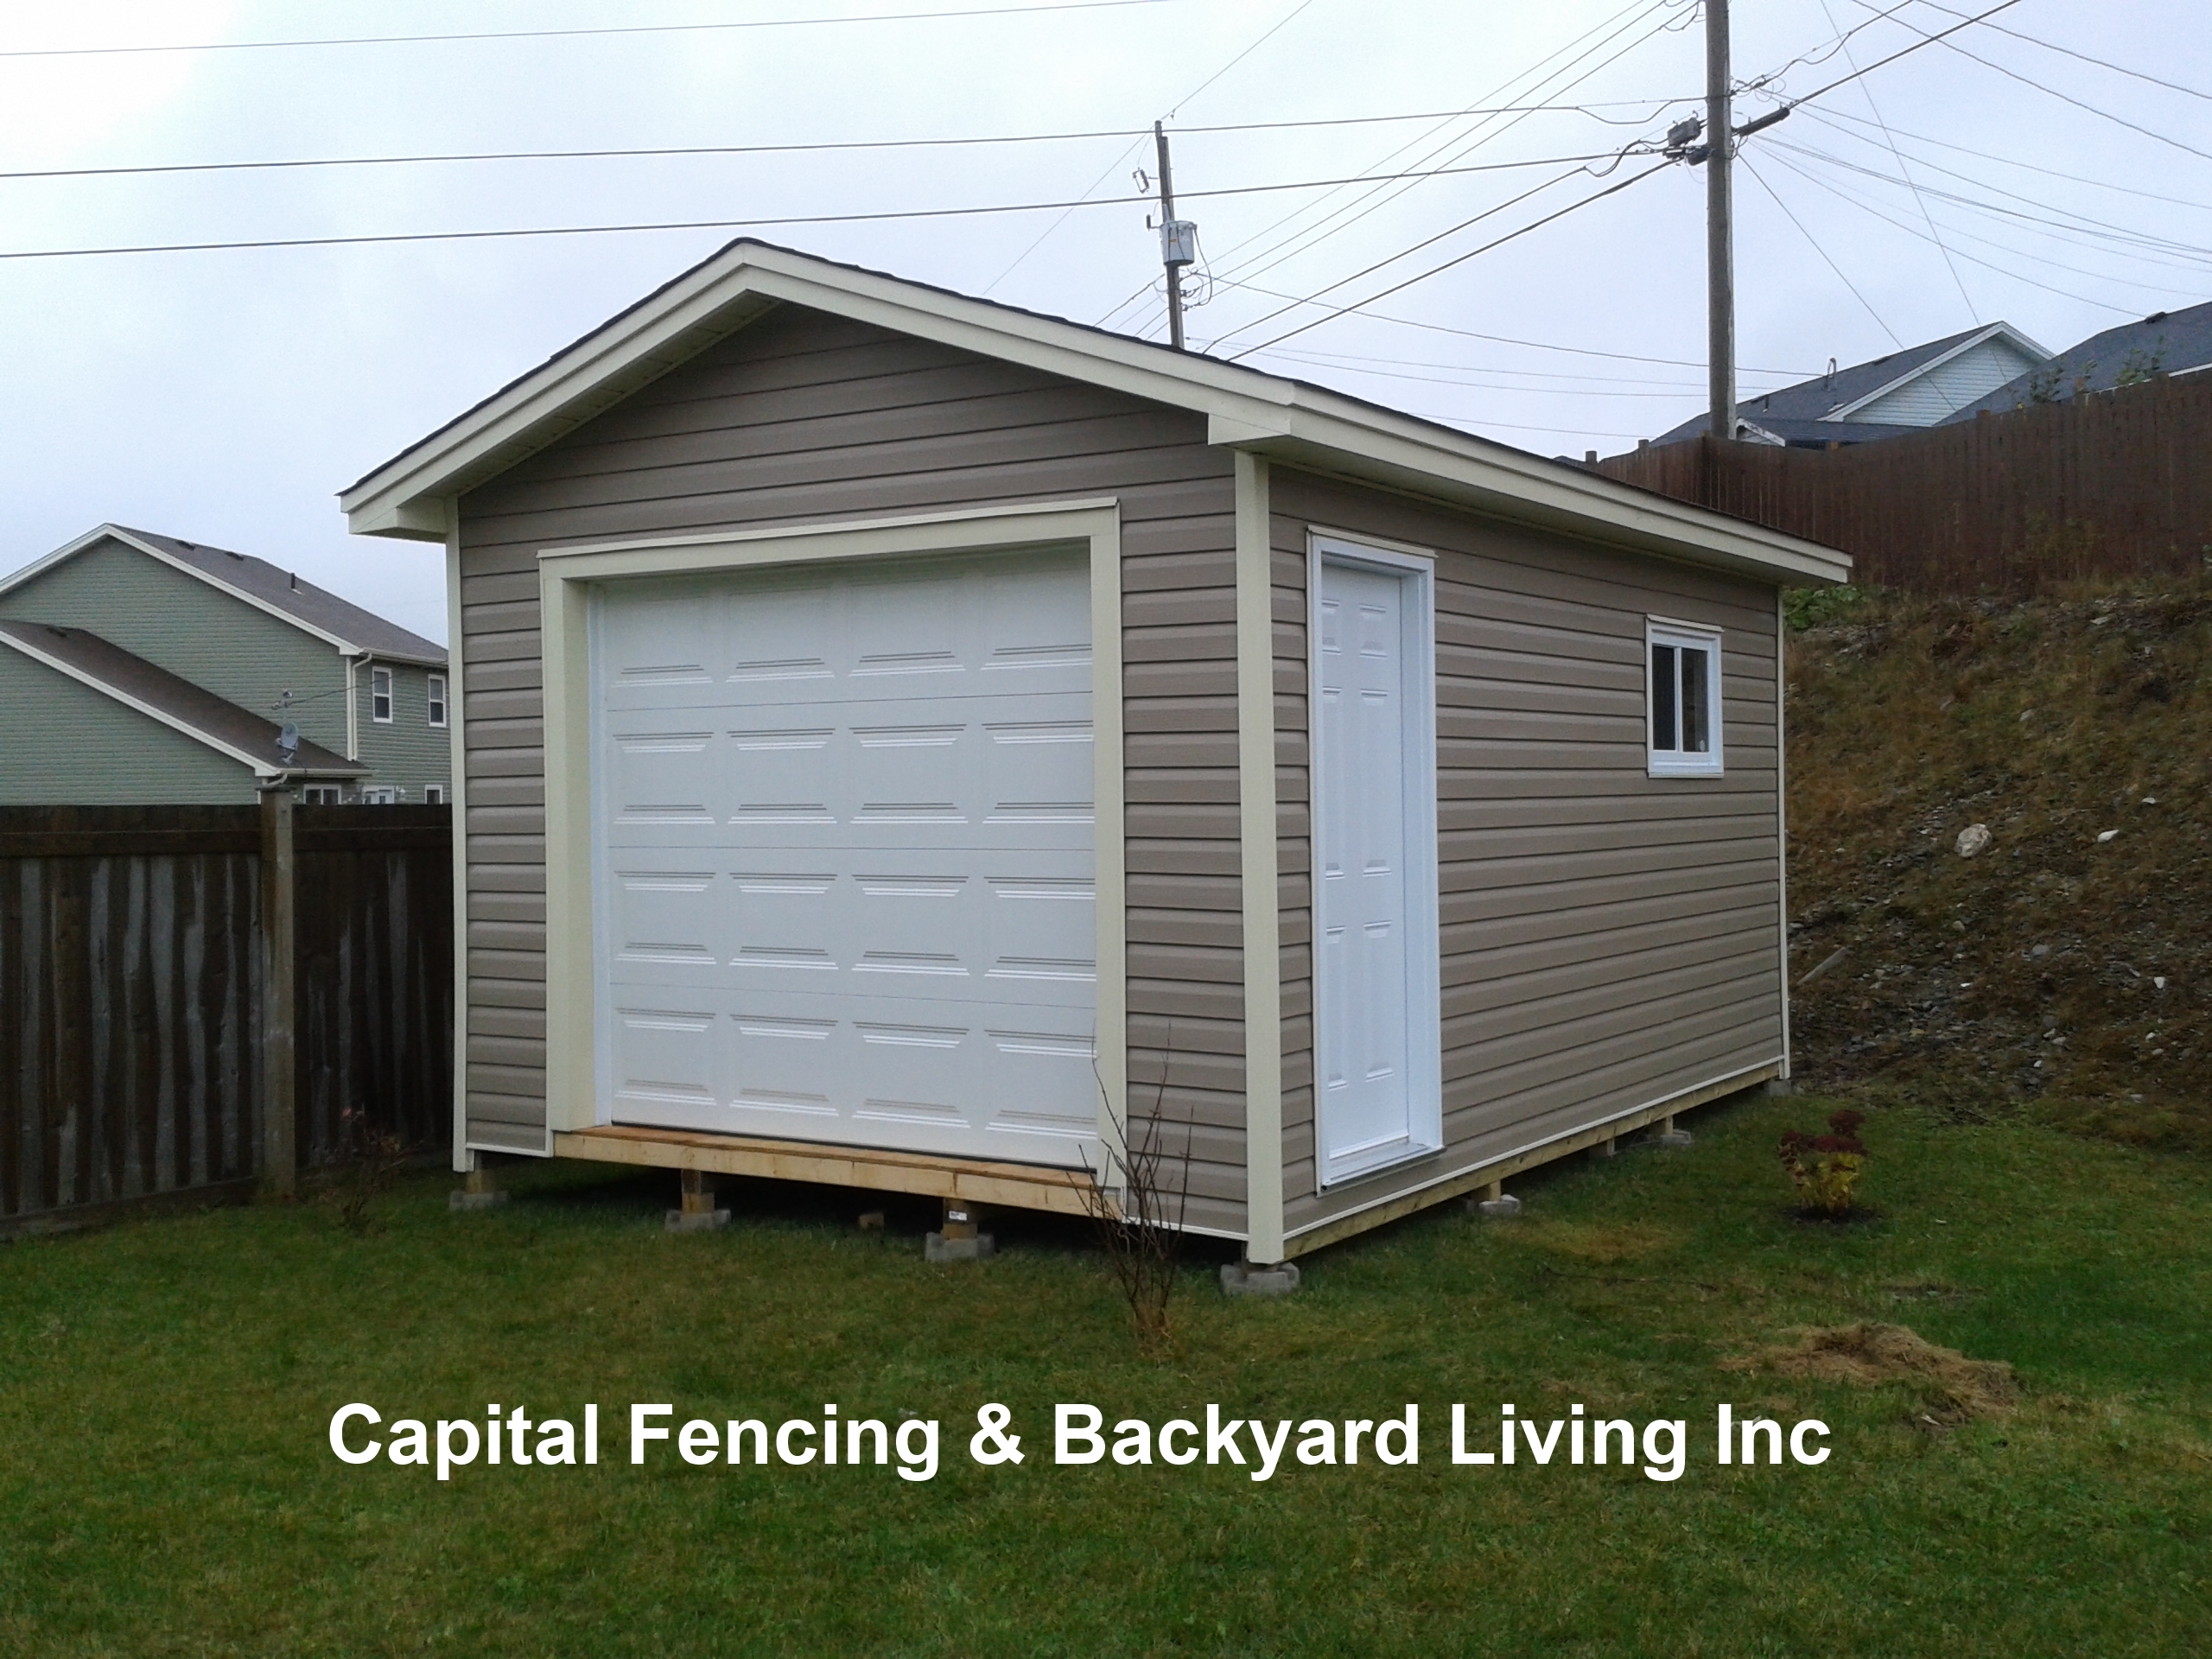 Sheds garages capital fencing and backyard living for 10x14 garage door